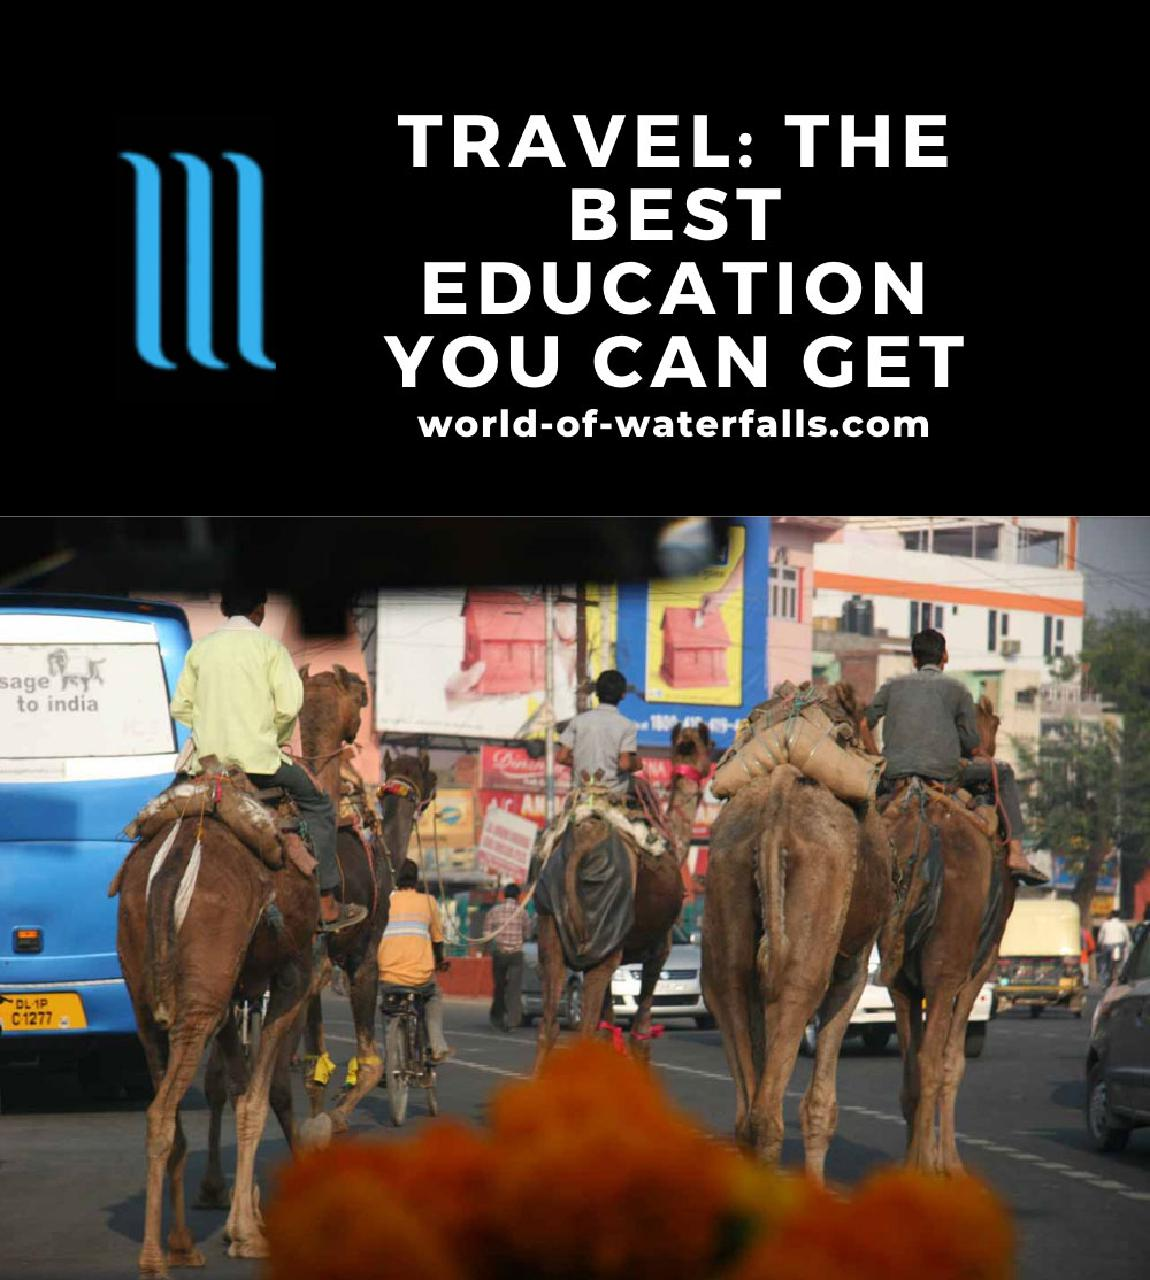 Travel: The Best Education You Can Get